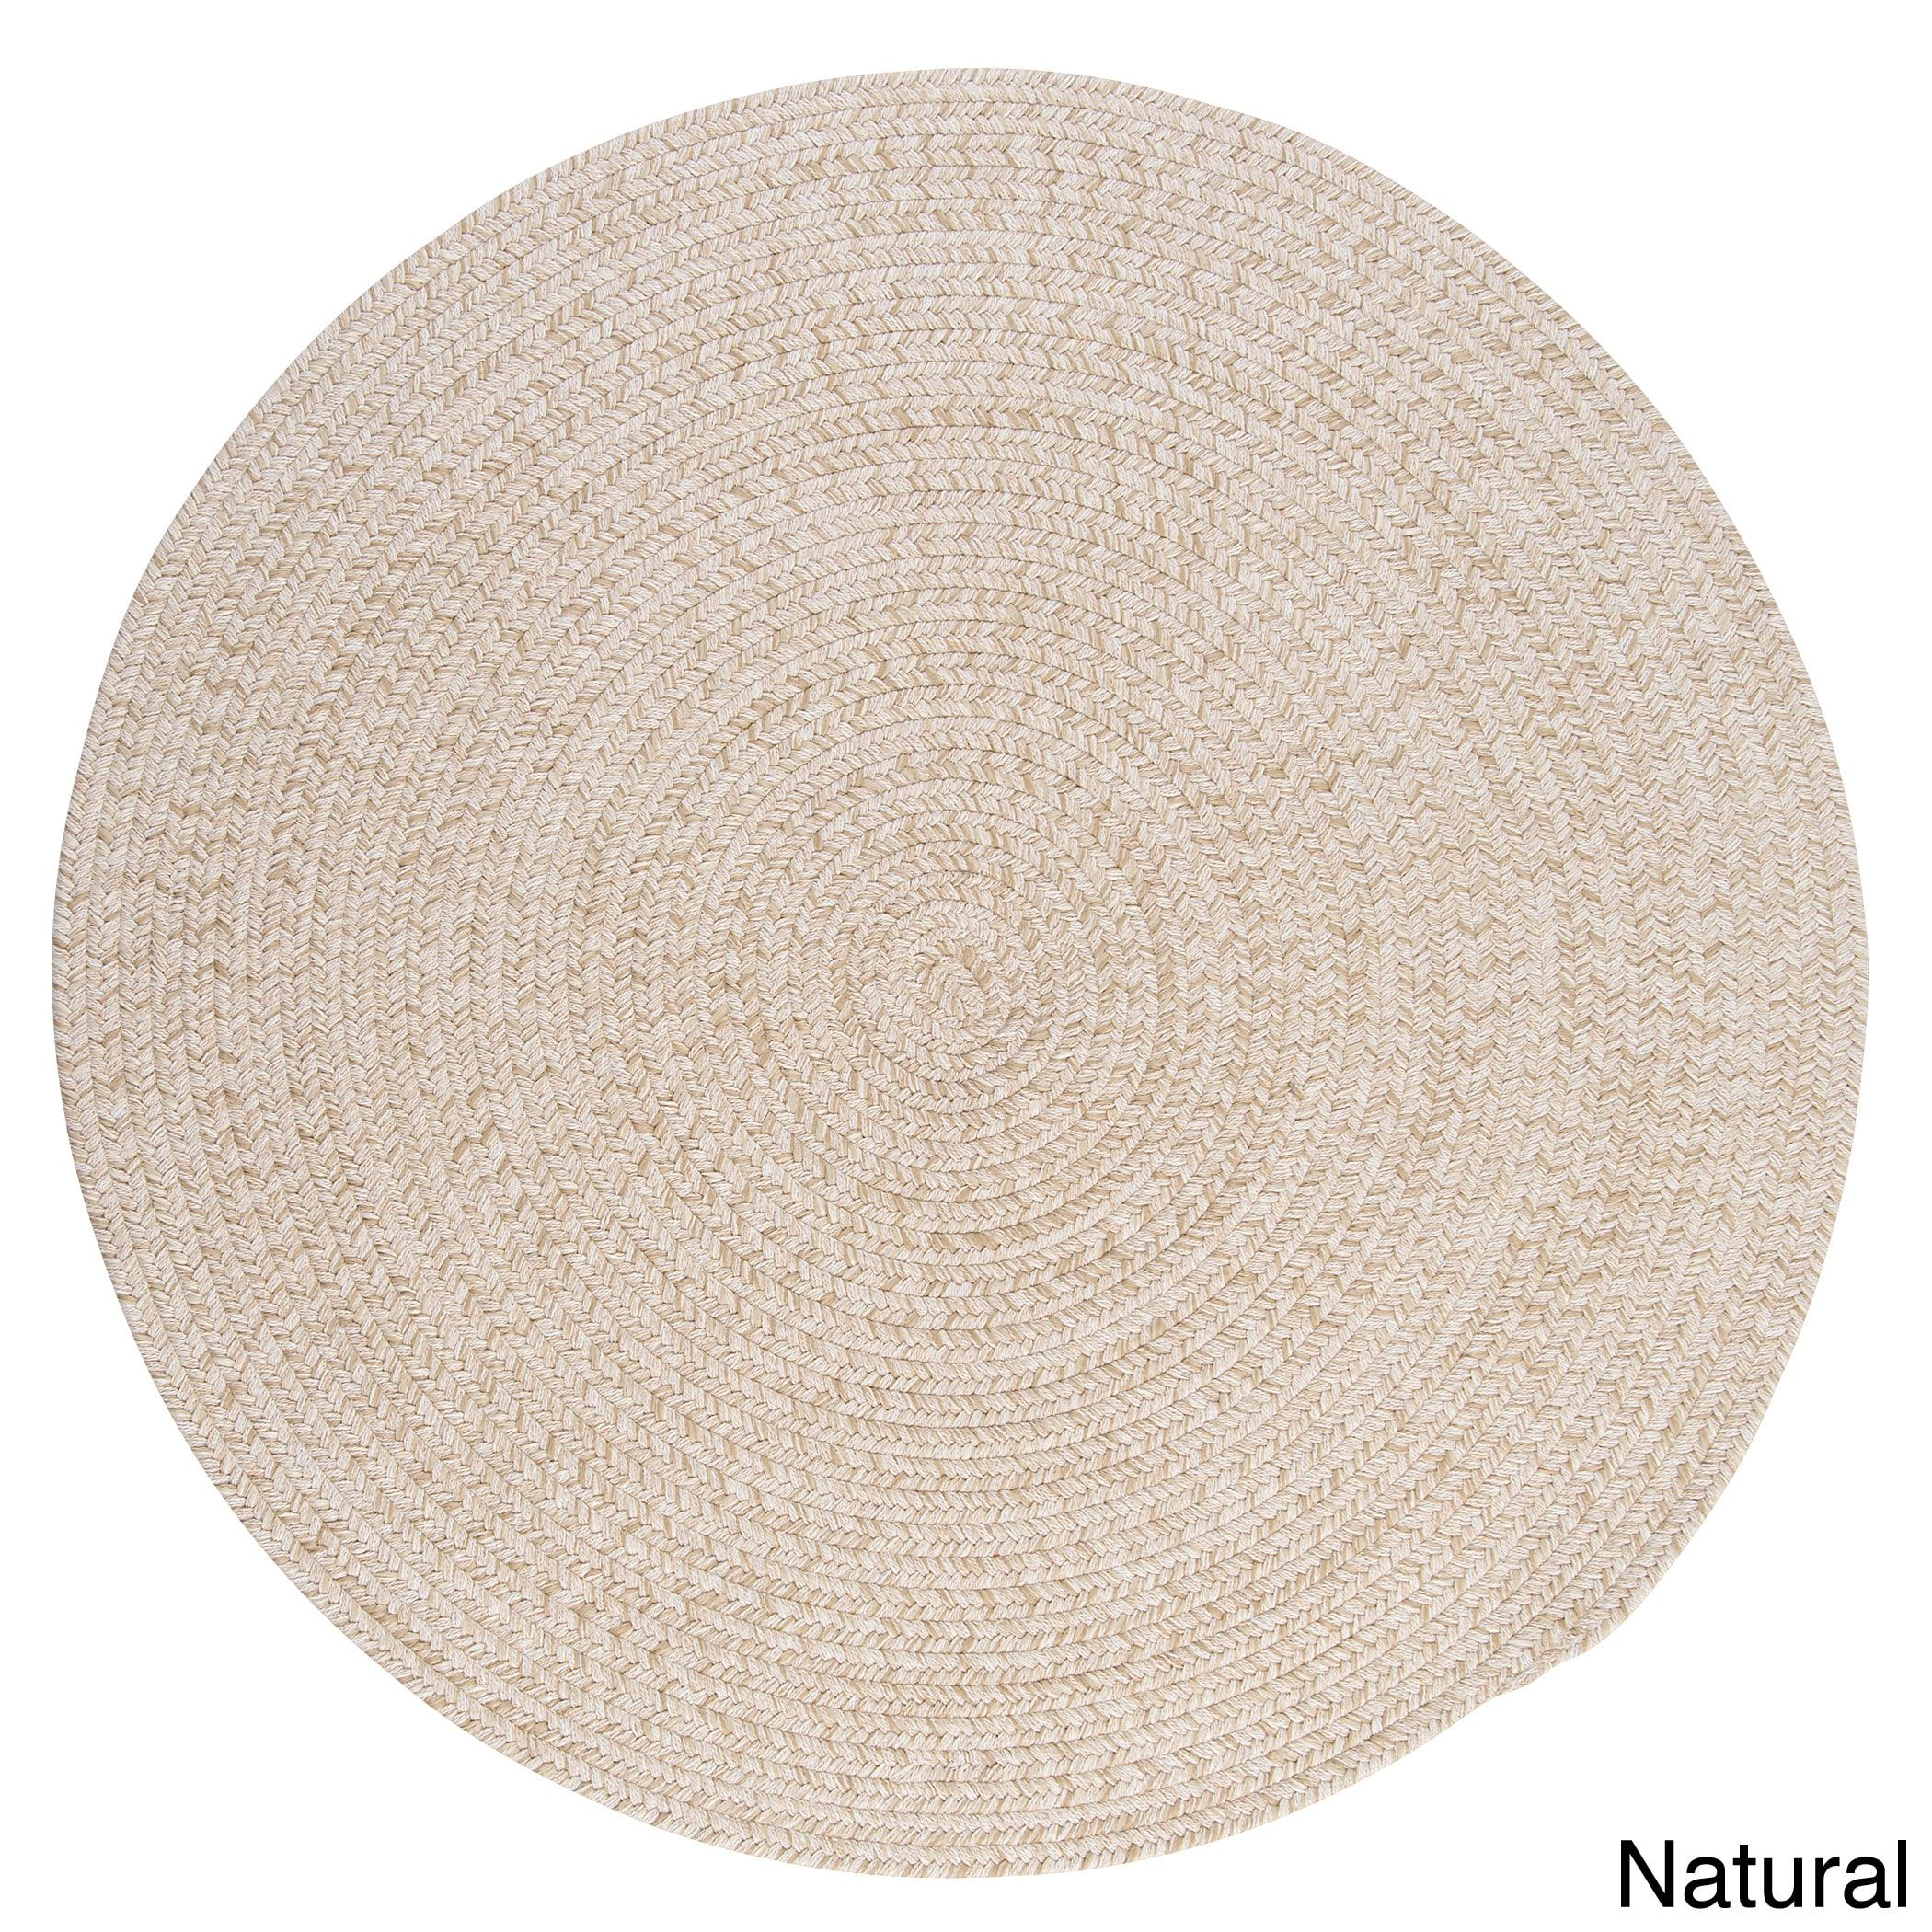 Urban Wool Blend Flat Braided Rug In 2020 With Images